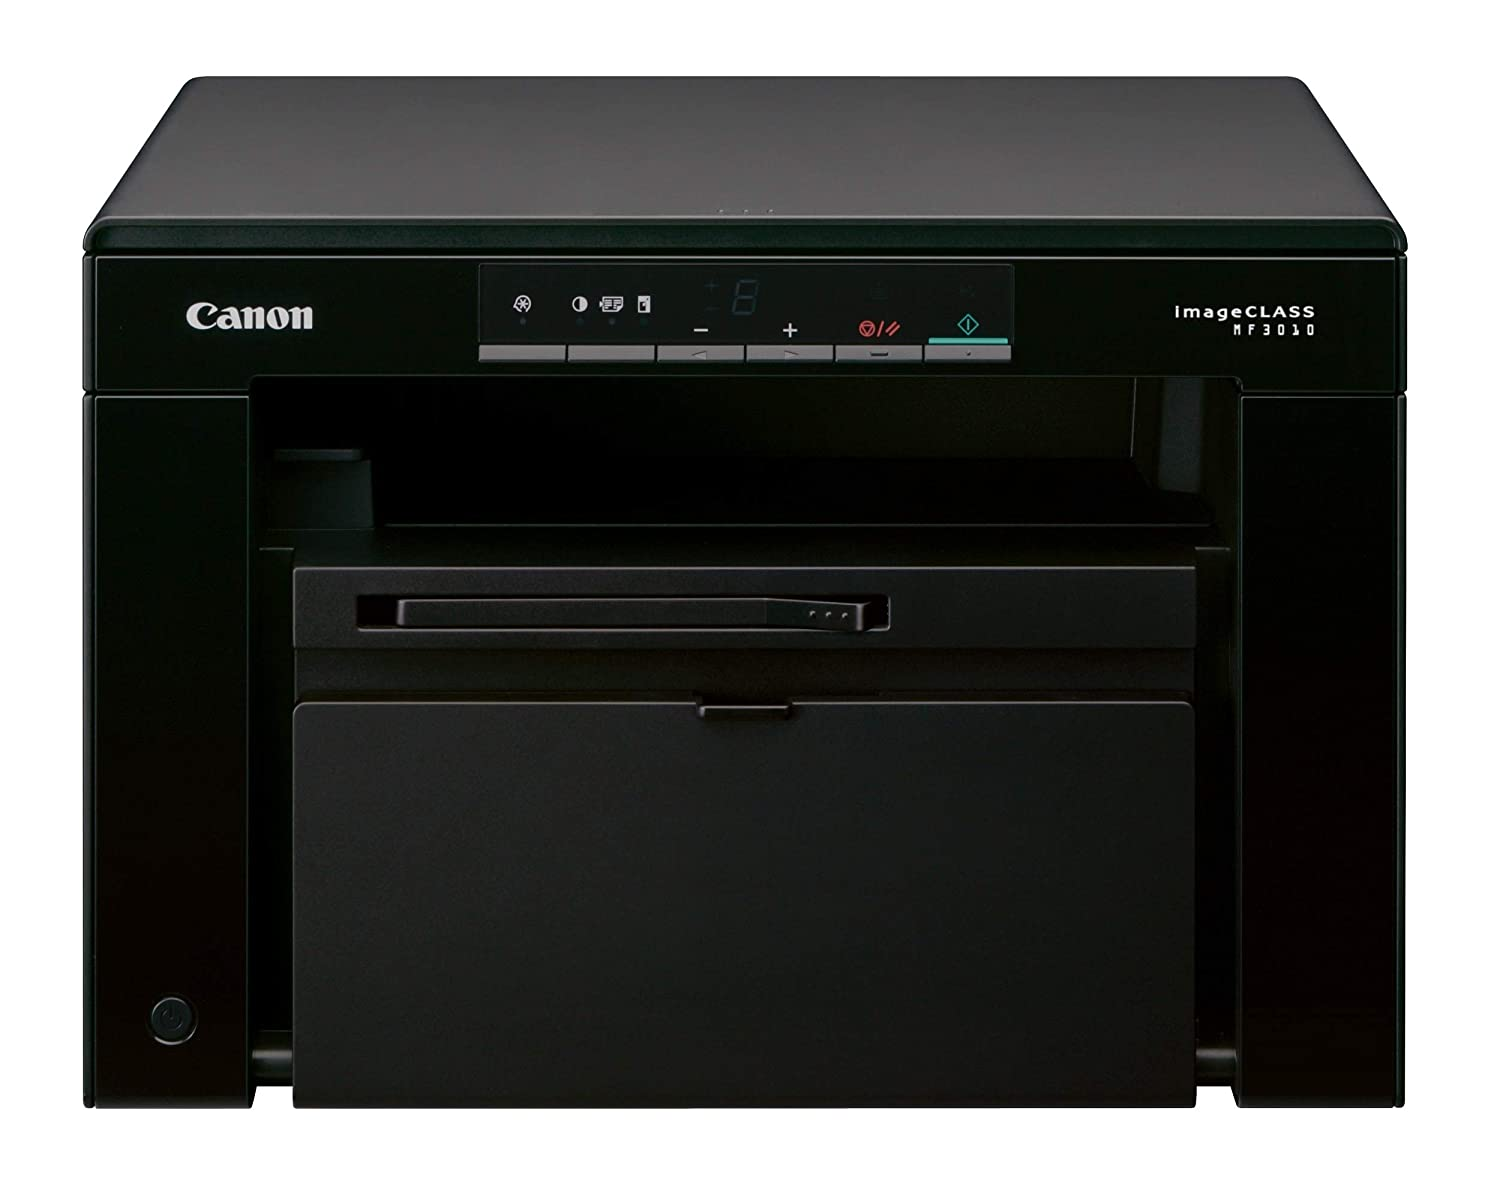 Top 5 Best Laser Printers For Office Use in 2021